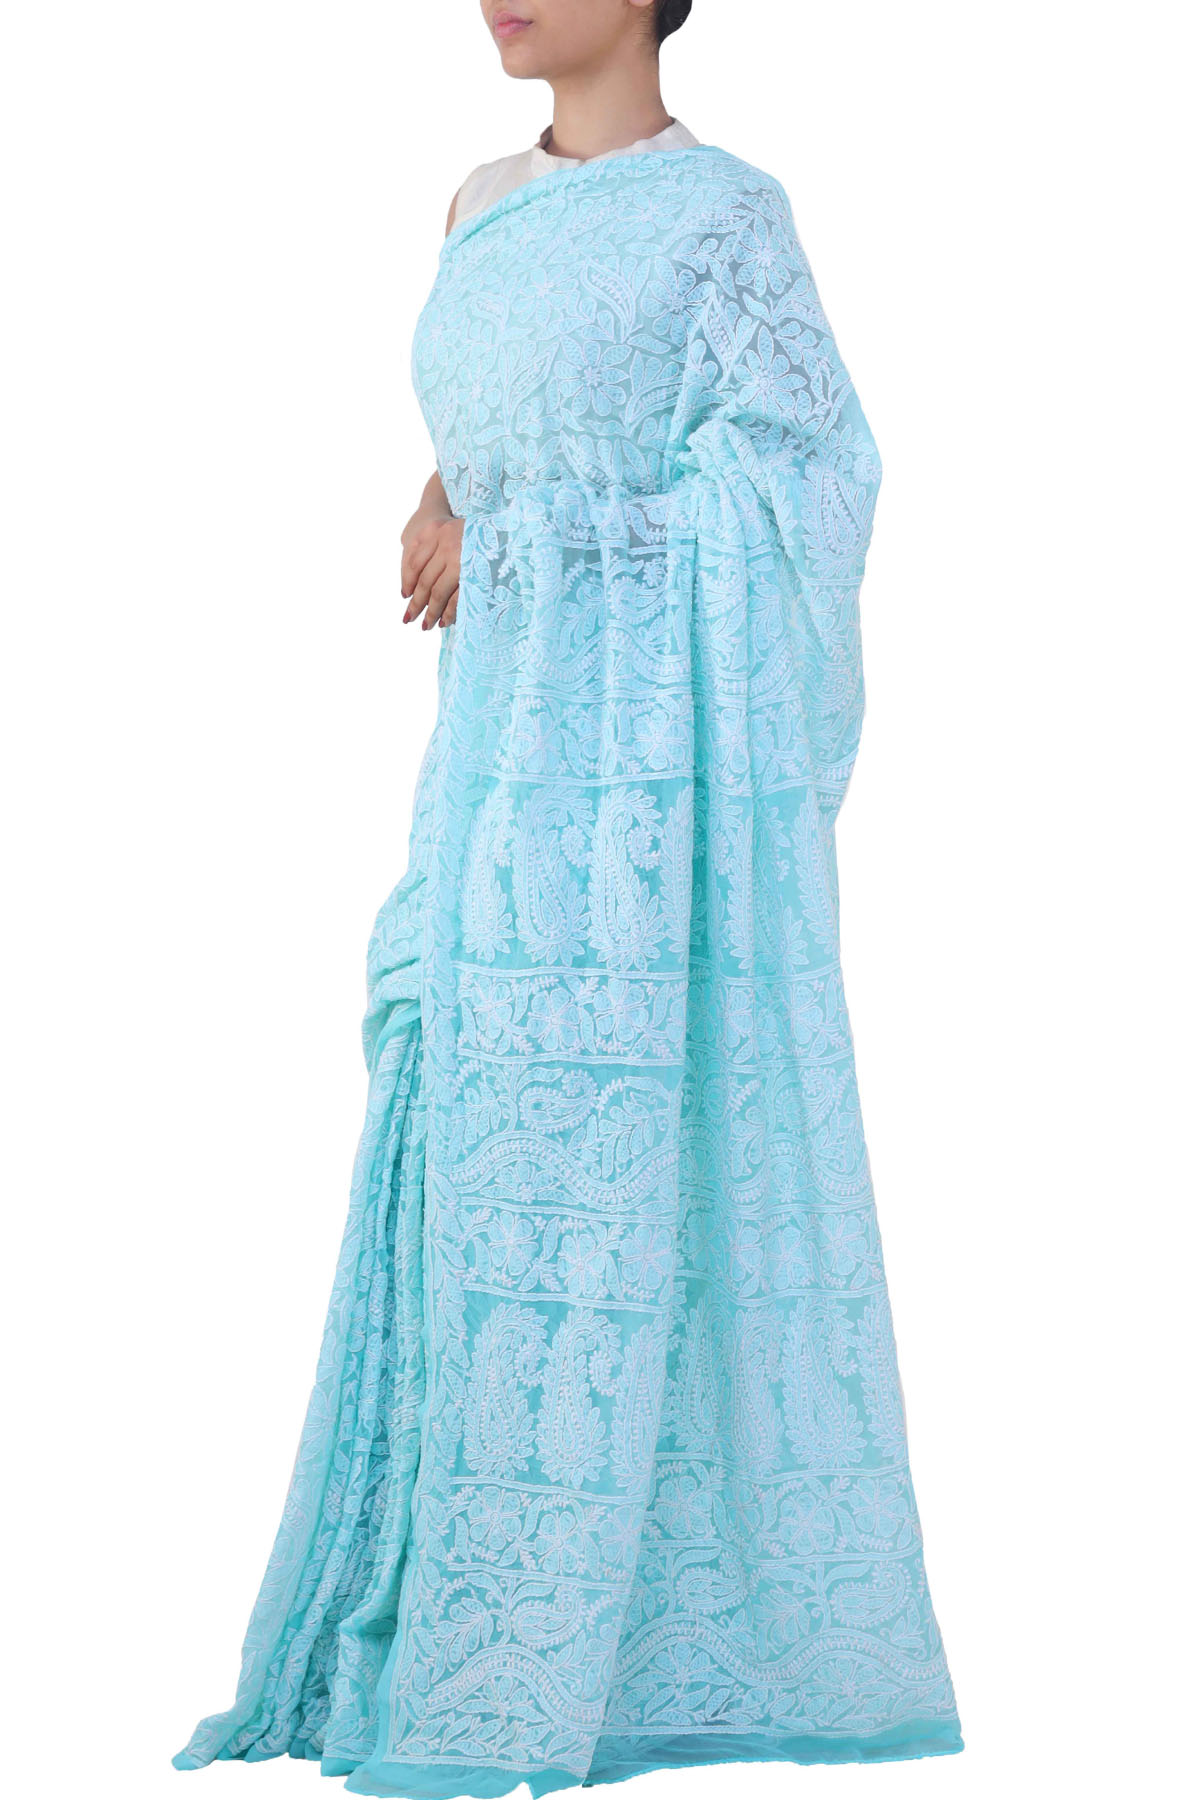 Skyblue Color, Allover Heavy Palla Hand Embroidered Lucknowi Chikankari Saree (With Blouse - Georgette) HS250677